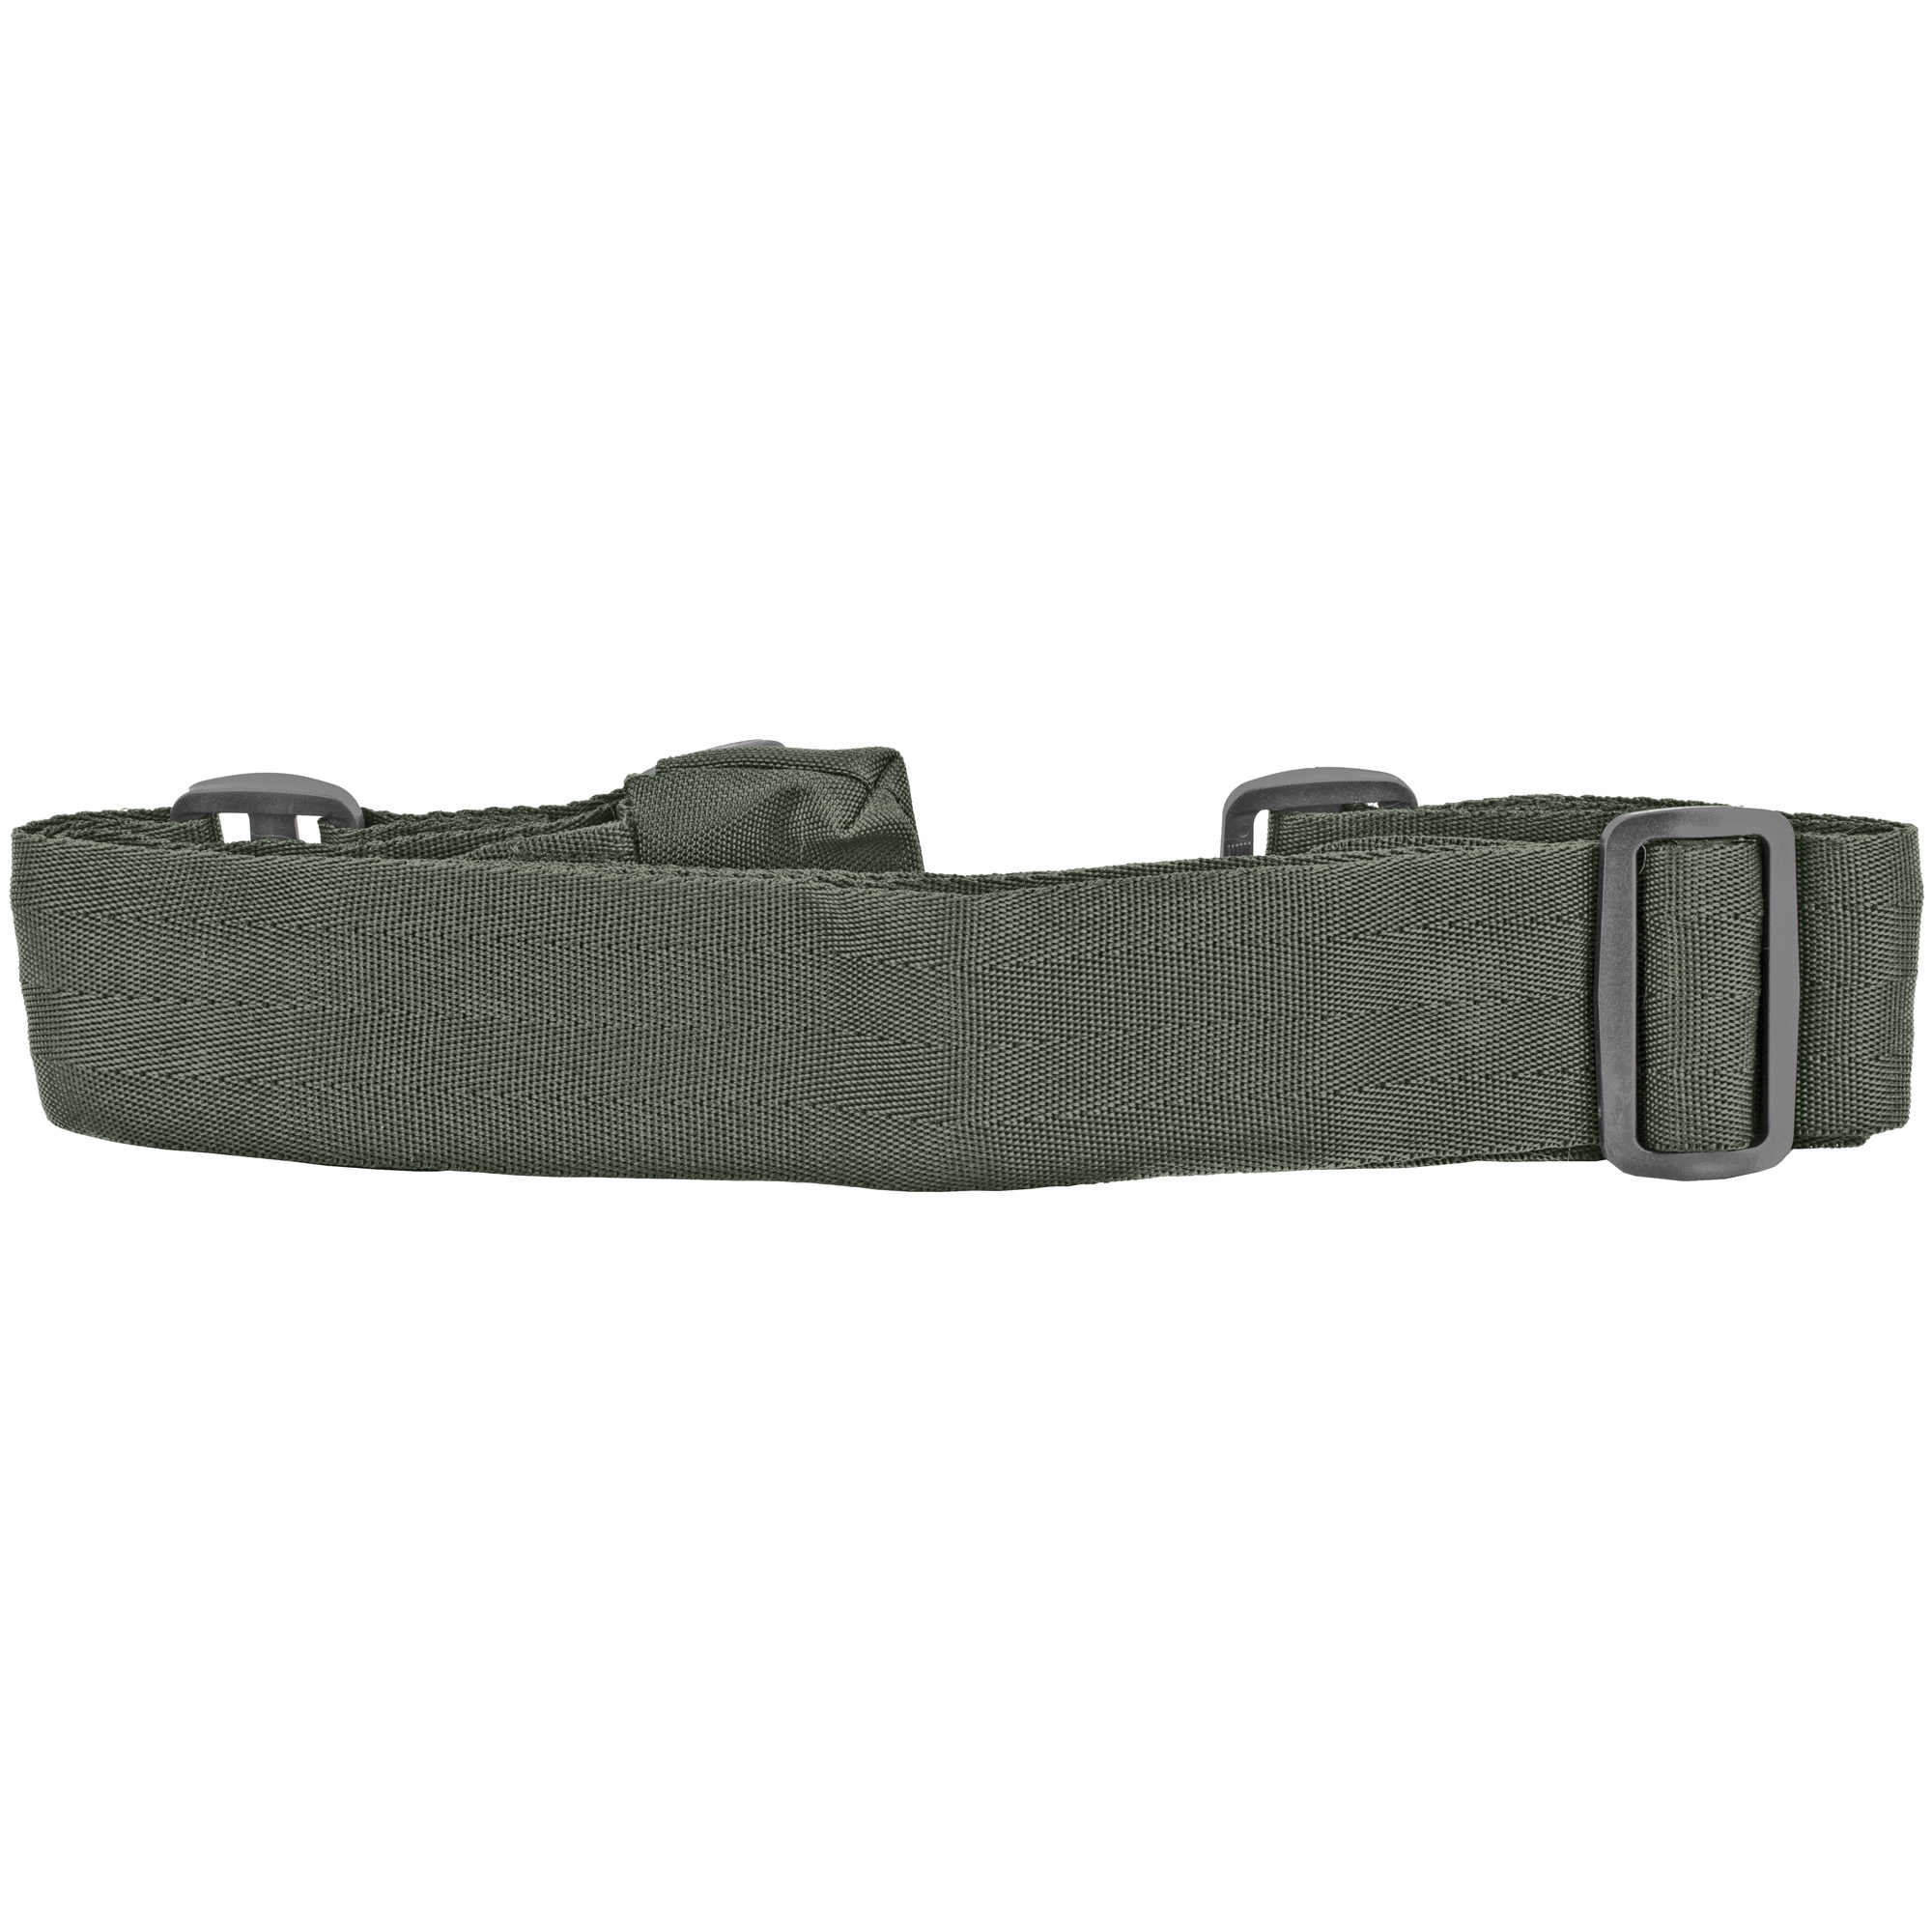 Fab Def Tactical Rifle Sling Odg